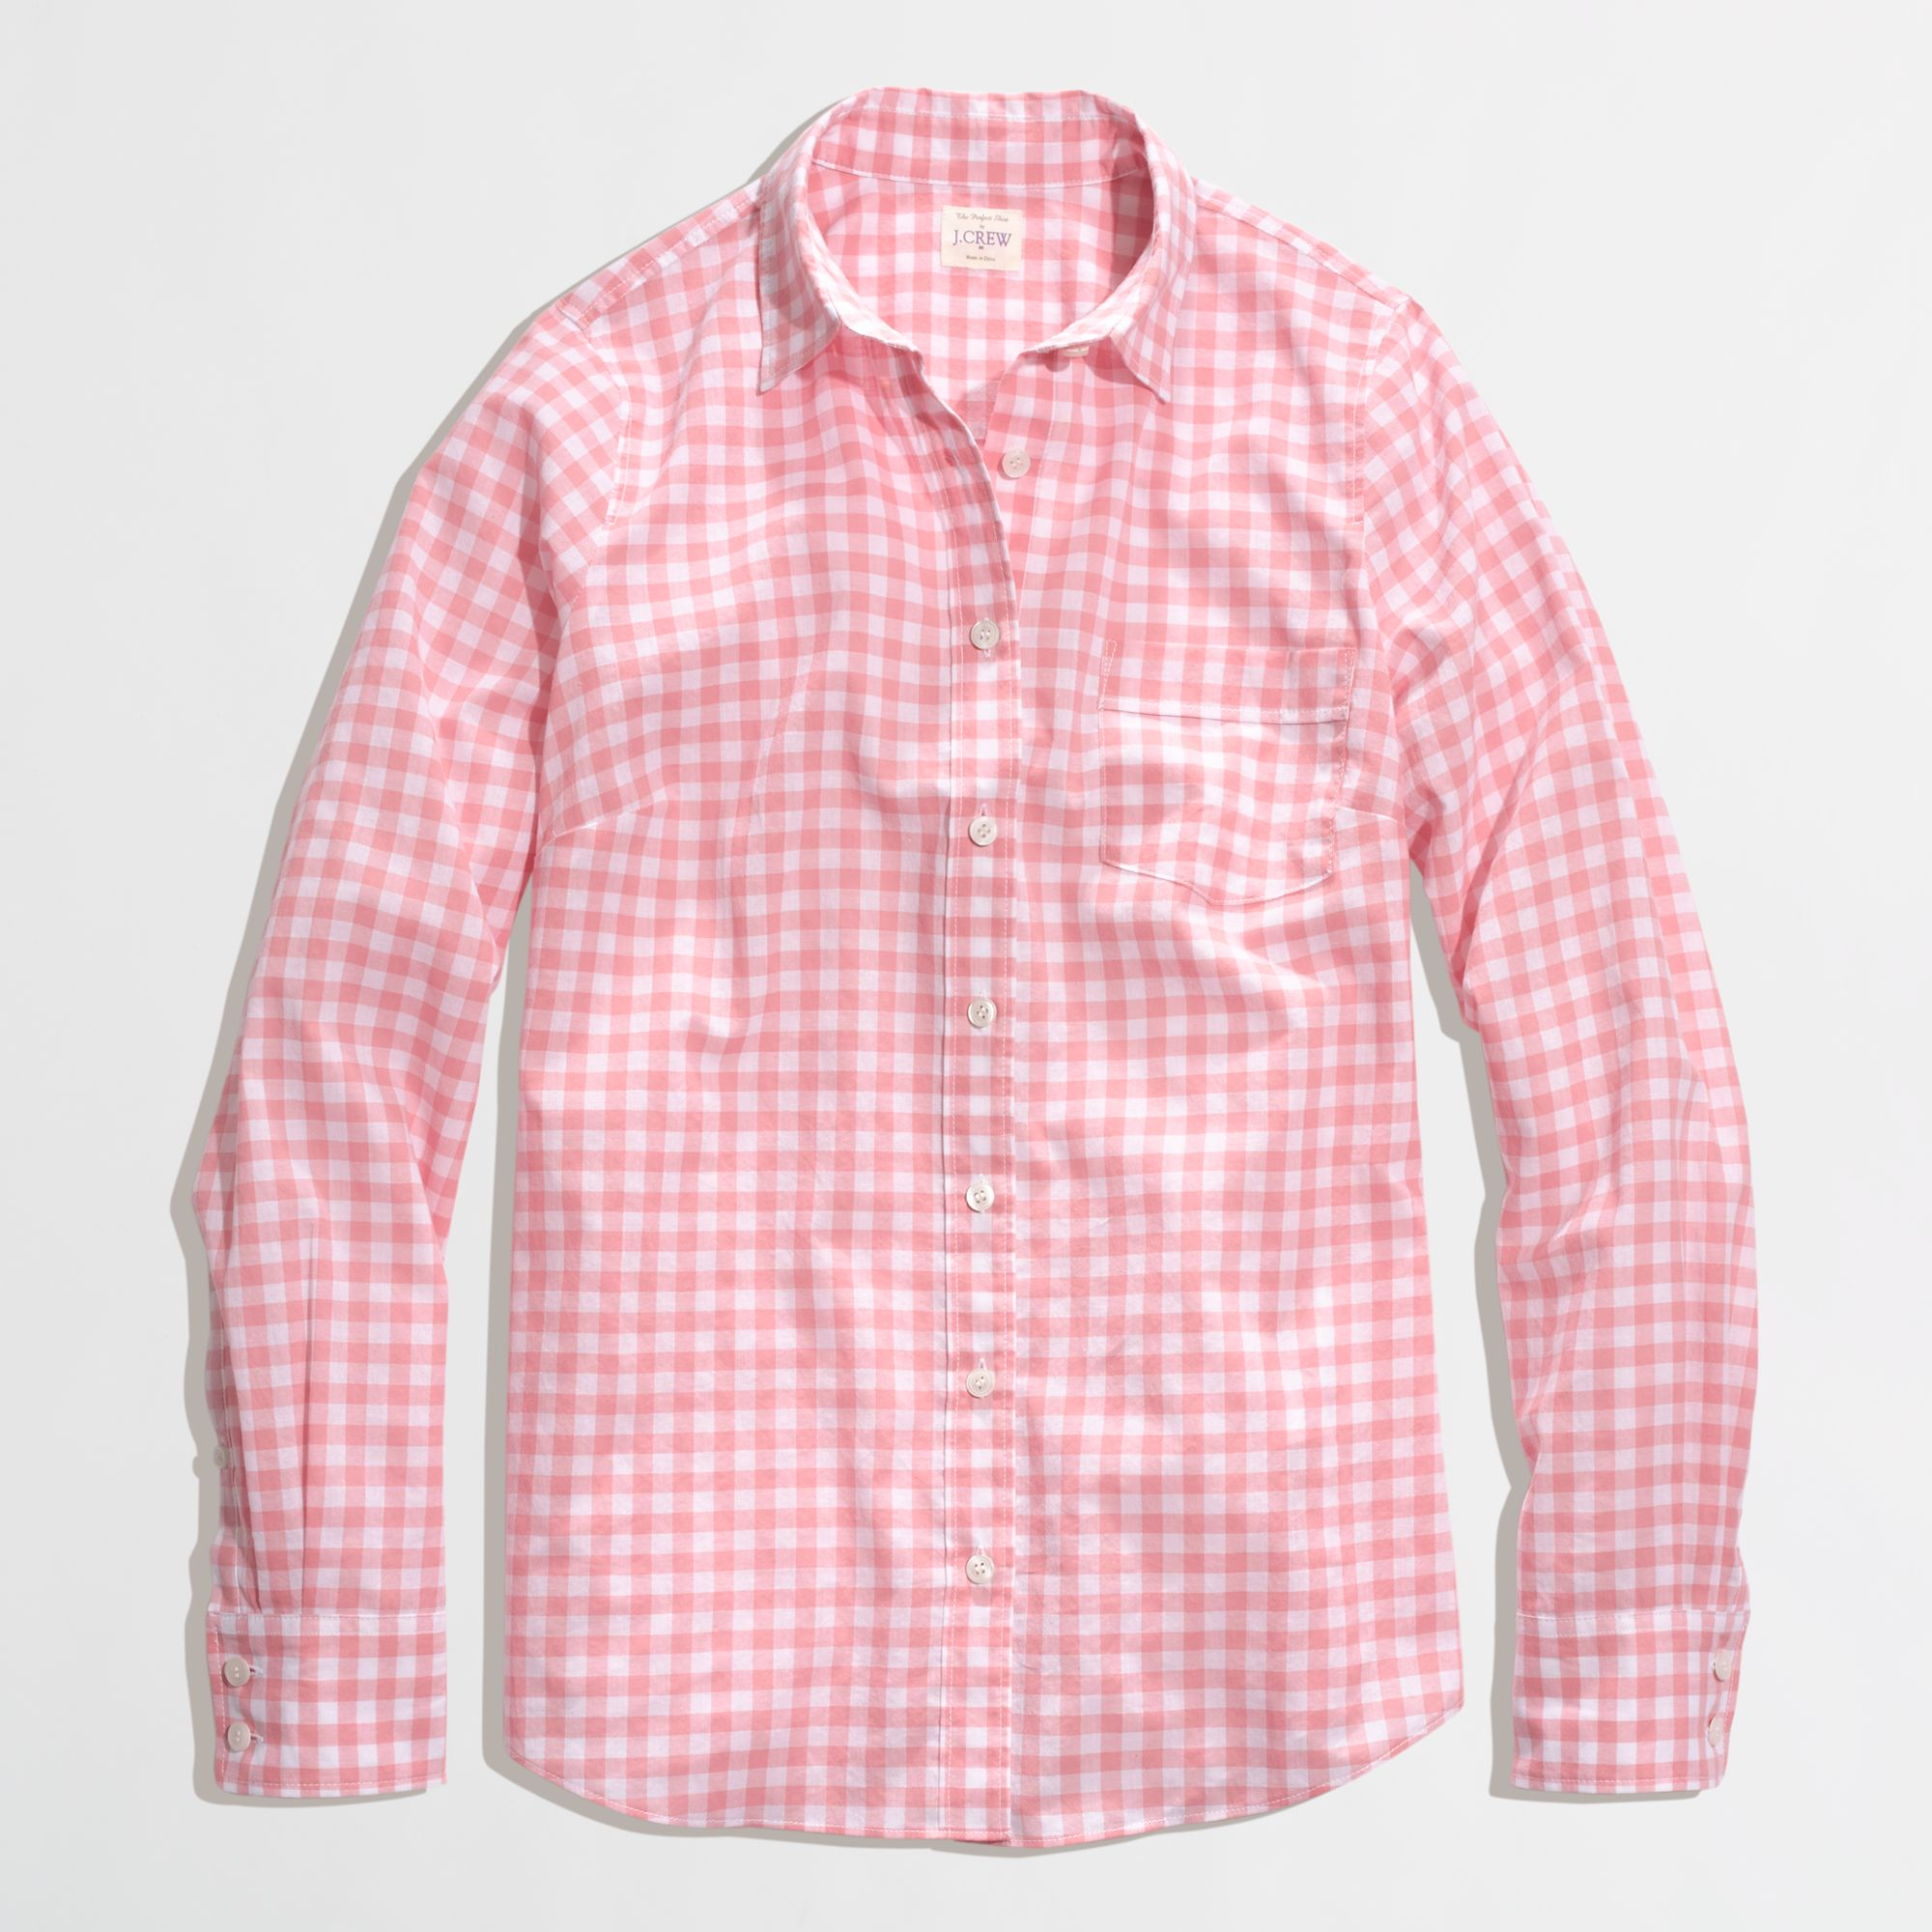 factory classic buttondown shirt in gingham in pink